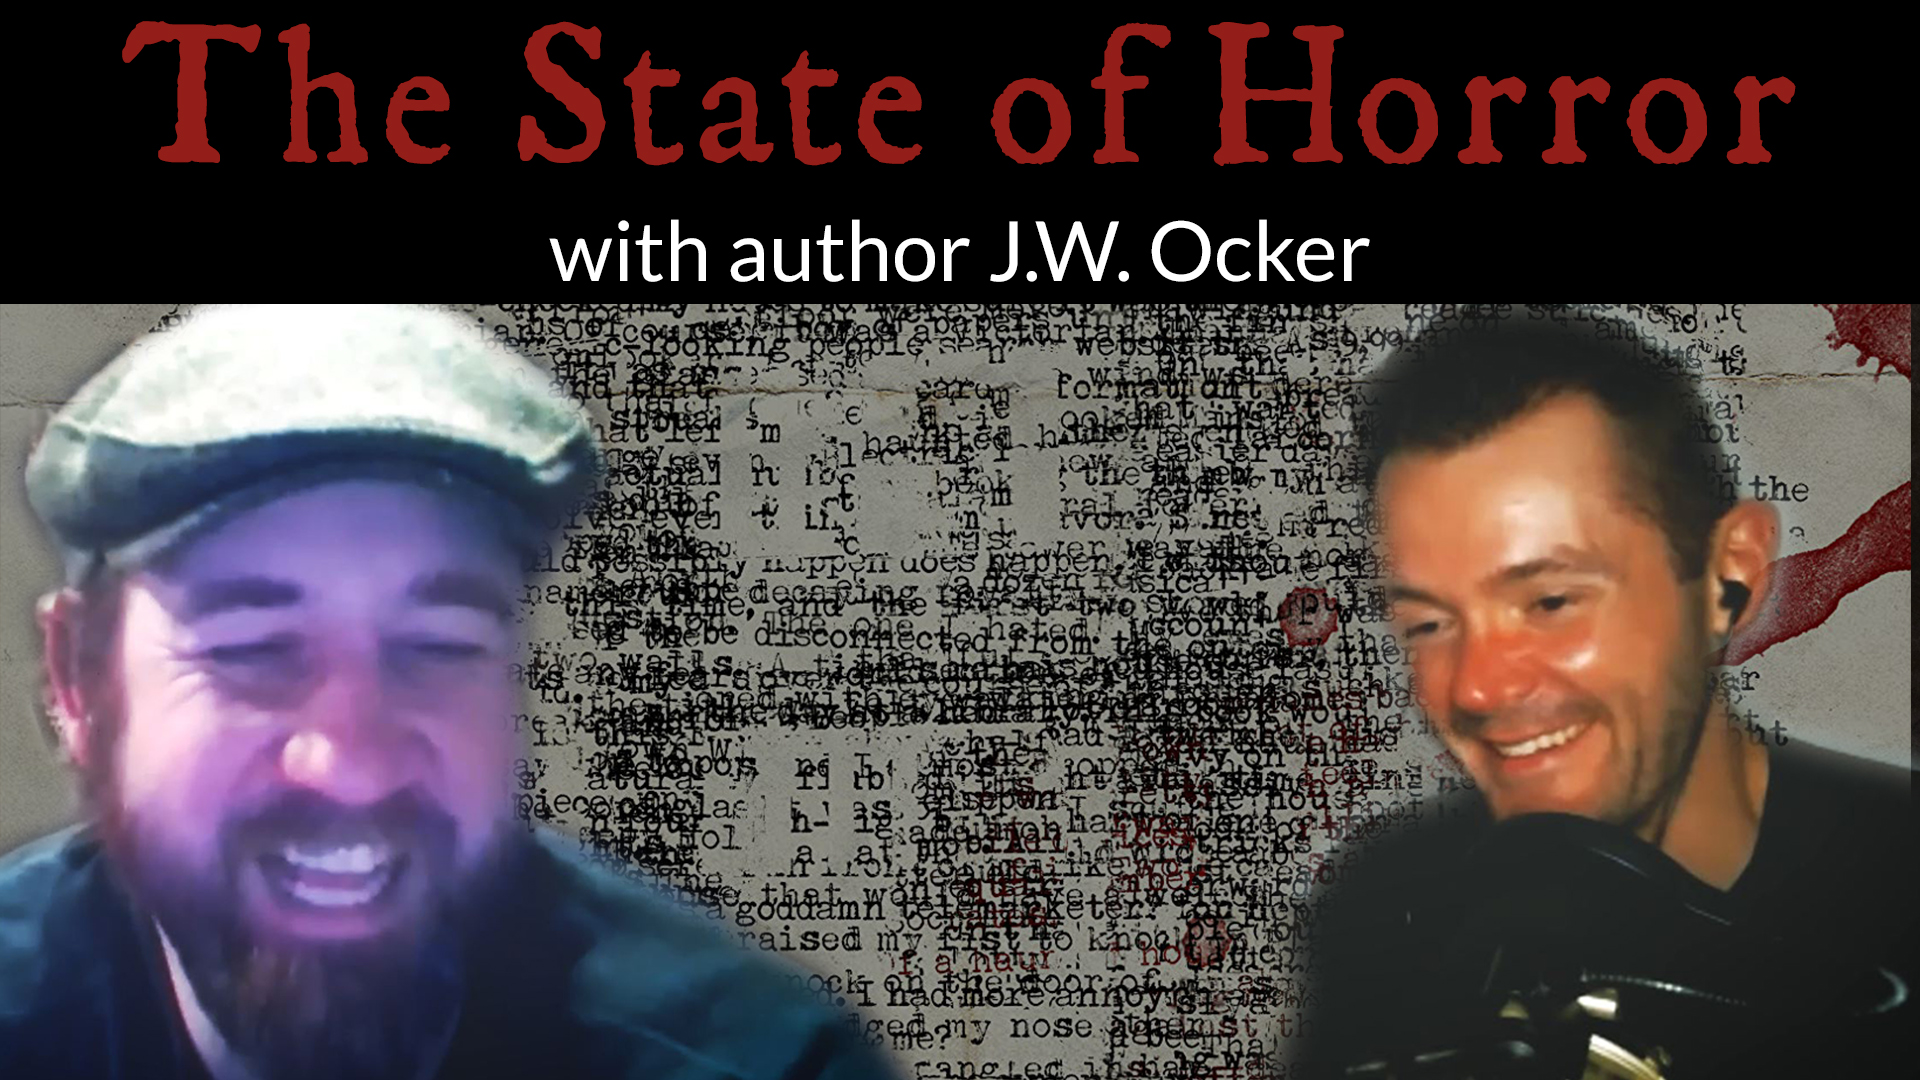 Weekly-Witch-01-State-of-Horror-Author-JW-Ocker-thumbnail